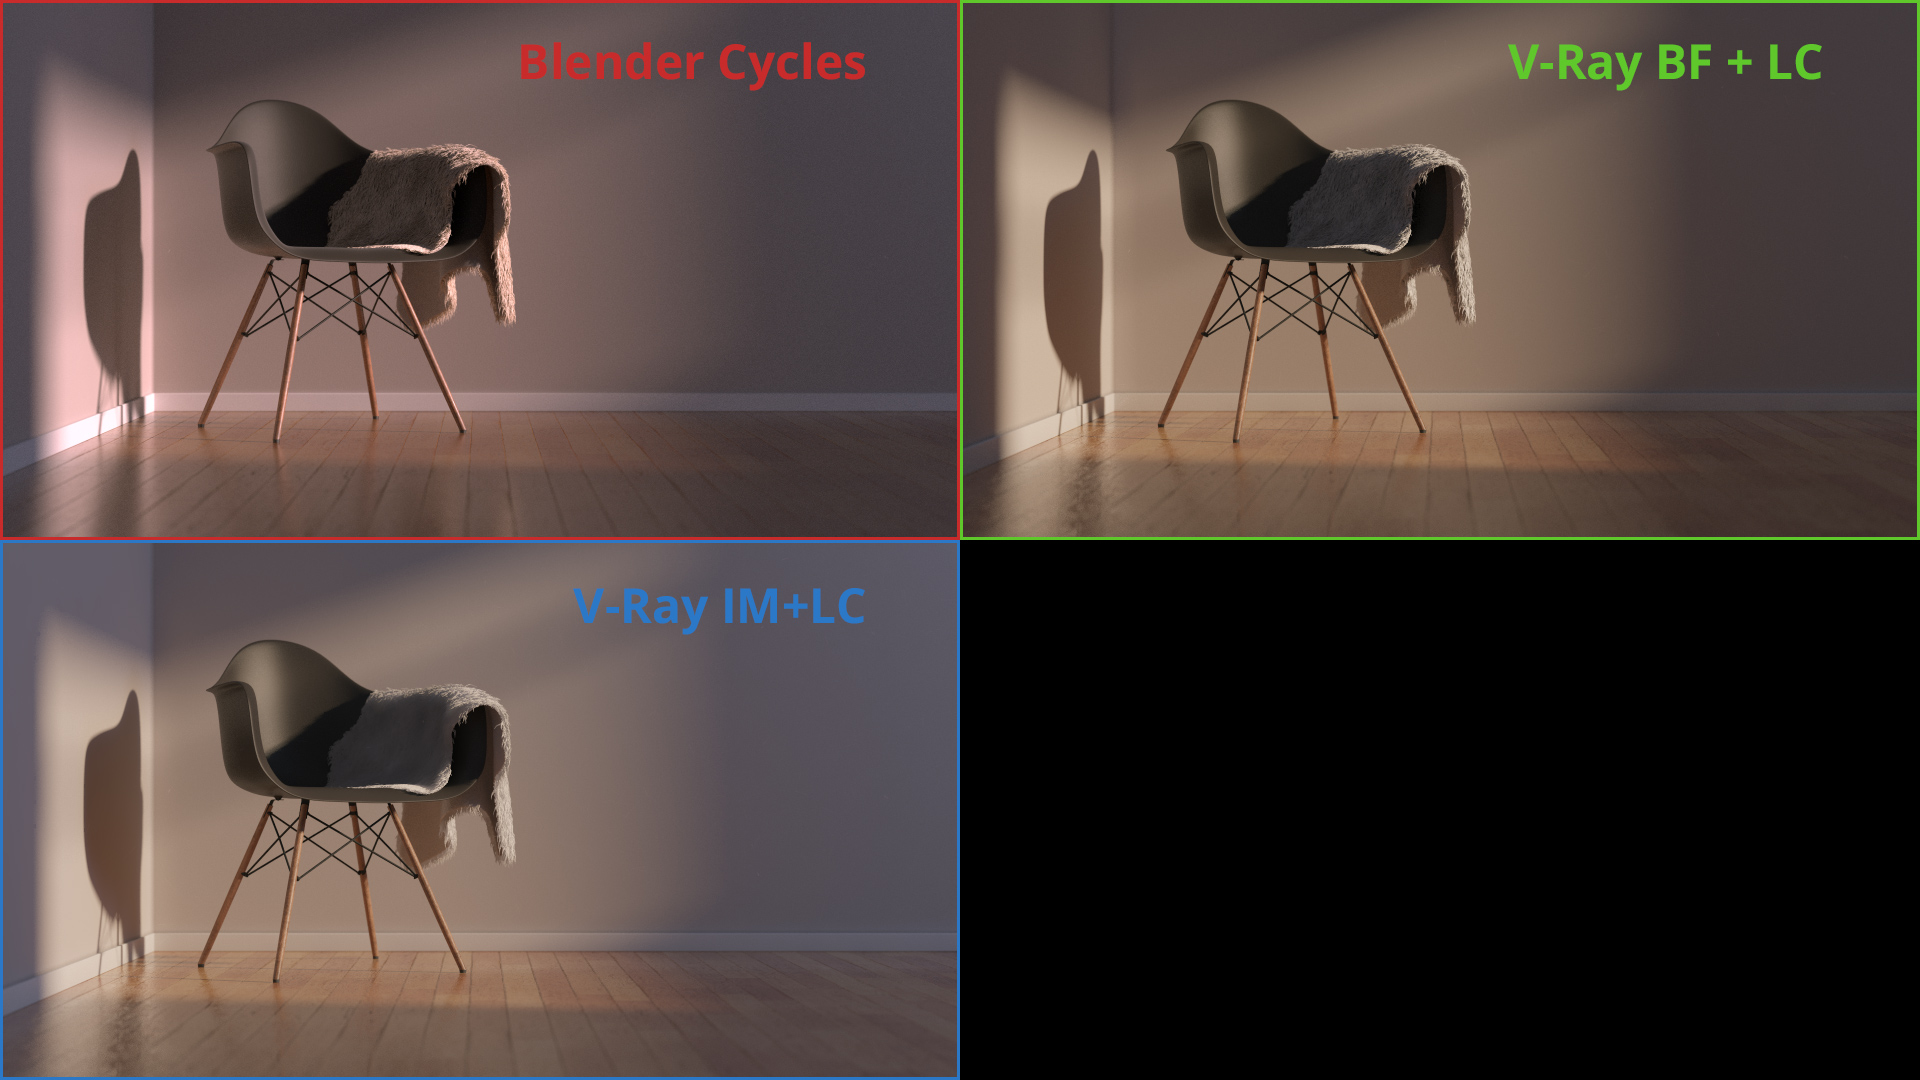 Blender Cycles vs VRay  Which one is better